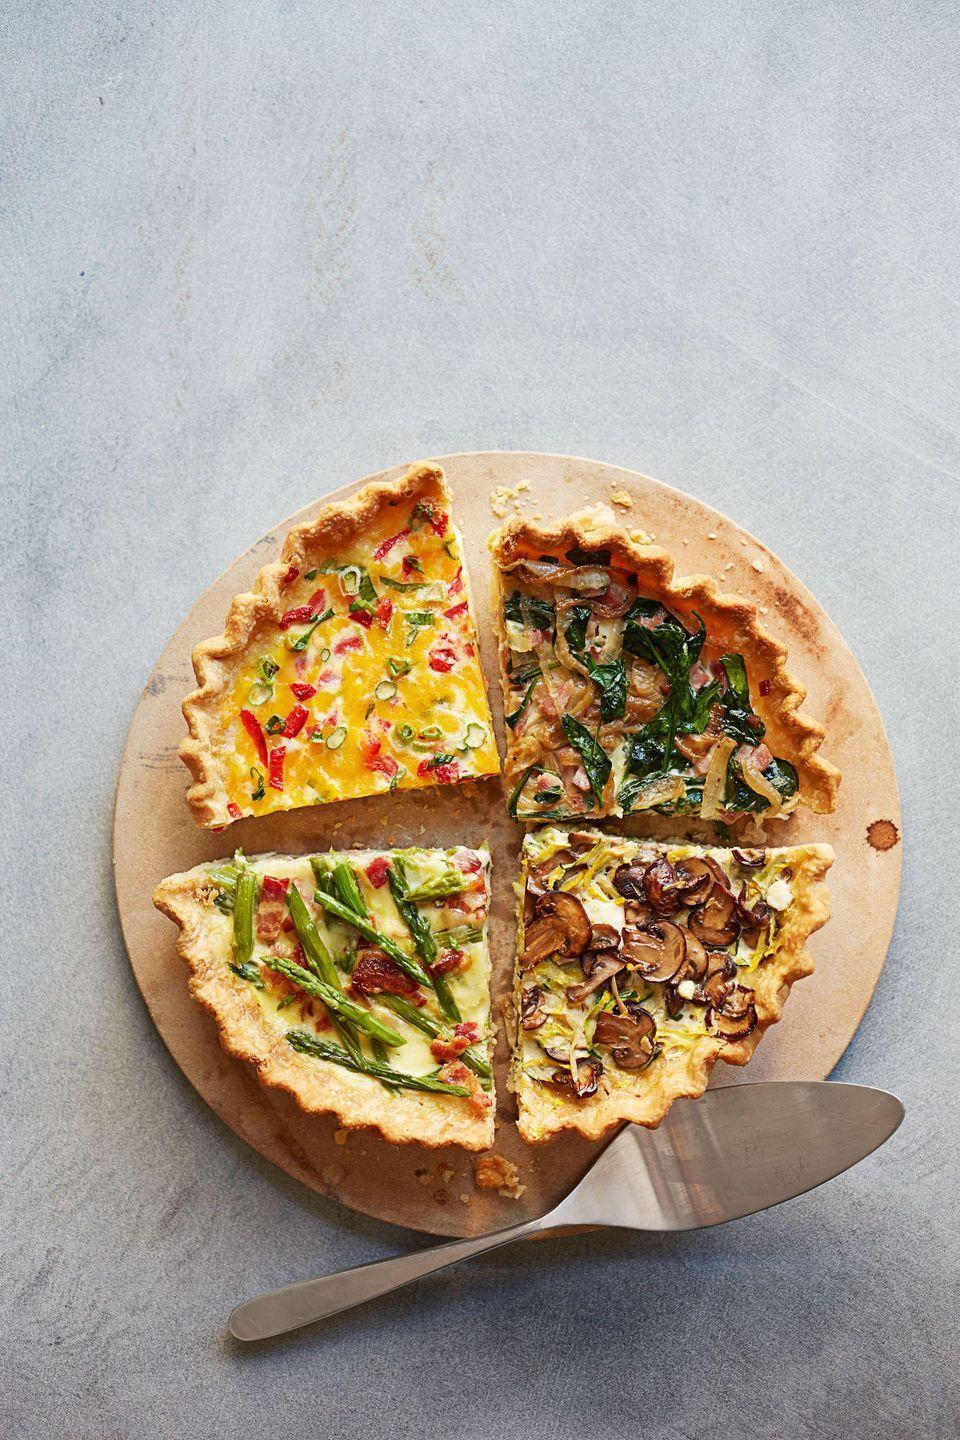 """<p>Quiches are the best way to mix and match your favorite ingredients. Need inspiration? Look no further.</p><p><em><a href=""""https://www.goodhousekeeping.com/food-recipes/a11866/ham-spinach-make-ahead-quiche-recipe-ghk0514/"""" rel=""""nofollow noopener"""" target=""""_blank"""" data-ylk=""""slk:Get the recipe for Ham and Spinach Make-Ahead Quiche»"""" class=""""link rapid-noclick-resp"""">Get the recipe for Ham and Spinach Make-Ahead Quiche»</a></em></p><p><em><a href=""""https://www.goodhousekeeping.com/food-recipes/a14620/asparagus-bacon-make-ahead-quiche-recipe-ghk0514/"""" rel=""""nofollow noopener"""" target=""""_blank"""" data-ylk=""""slk:Get the recipe for Asparagus and Bacon Make-Ahead Quiche »"""" class=""""link rapid-noclick-resp"""">Get the recipe for Asparagus and Bacon Make-Ahead Quiche »</a></em></p><p><em><a href=""""https://www.goodhousekeeping.com/food-recipes/a15630/pimiento-cheese-make-ahead-quiche-recipe-ghk0514/"""" rel=""""nofollow noopener"""" target=""""_blank"""" data-ylk=""""slk:Get the recipe for Pimiento Cheese Make-Ahead Quiche»"""" class=""""link rapid-noclick-resp"""">Get the recipe for Pimiento Cheese Make-Ahead Quiche»</a></em></p><p><a href=""""https://www.goodhousekeeping.com/food-recipes/a14636/mushroom-zucchini-make-ahead-quiche-recipe-ghk0514/"""" rel=""""nofollow noopener"""" target=""""_blank"""" data-ylk=""""slk:Get the recipe for Mushroom and Zucchini Make-Ahead Quiche »"""" class=""""link rapid-noclick-resp""""><em>Get the recipe for Mushroom and Zucchini Make-Ahead Quiche »</em></a></p>"""